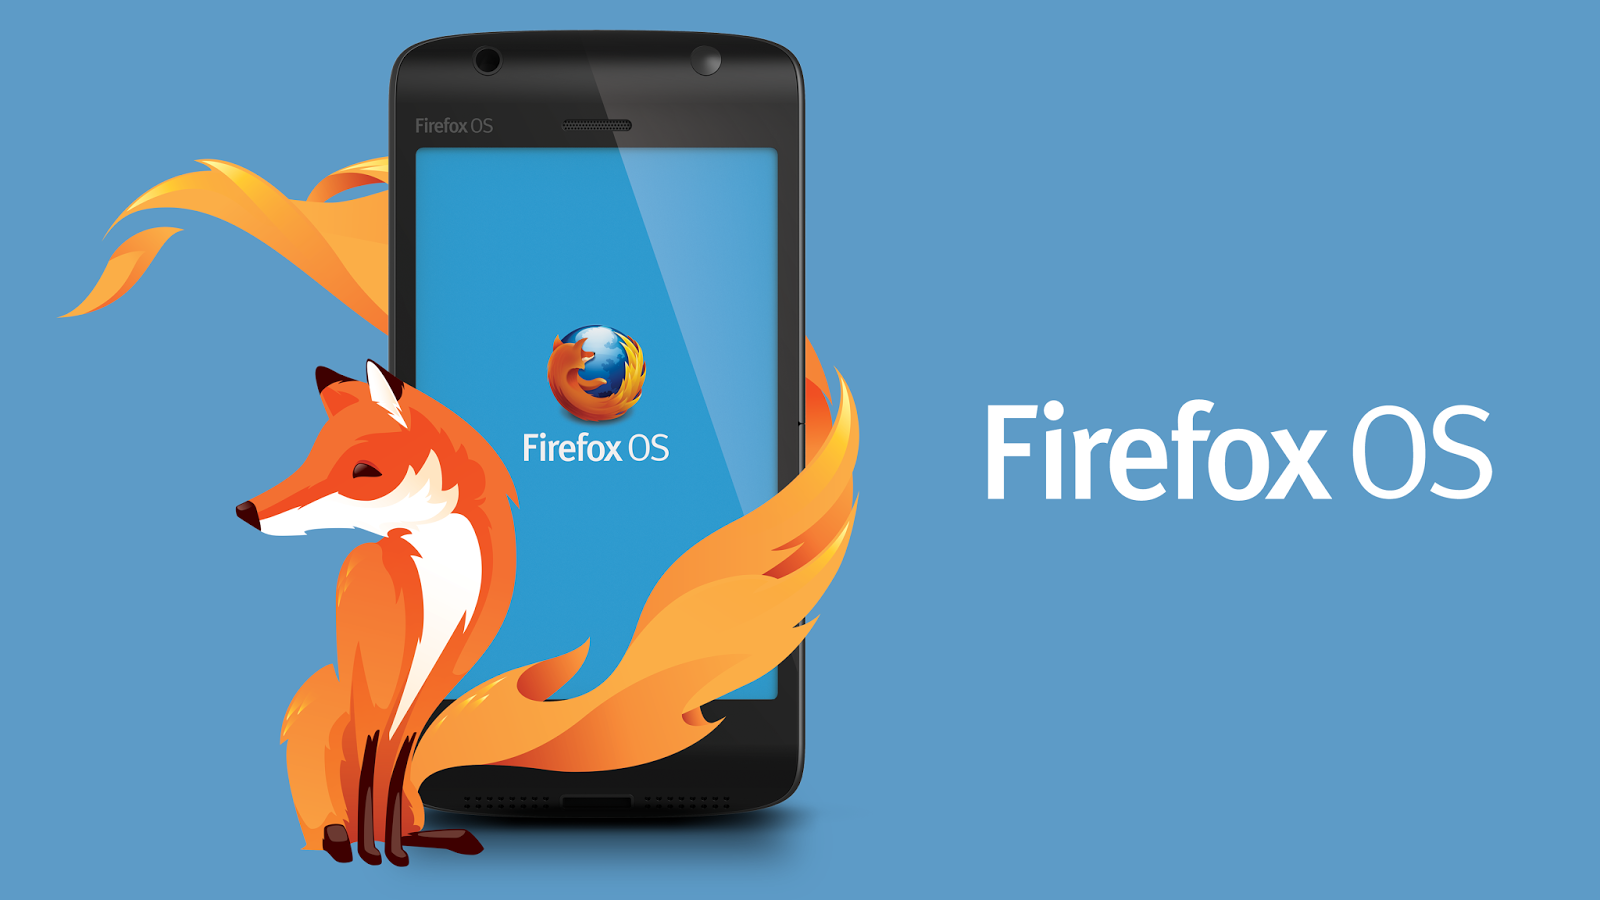 Install and Have a Feel of Firefox O S on your Android